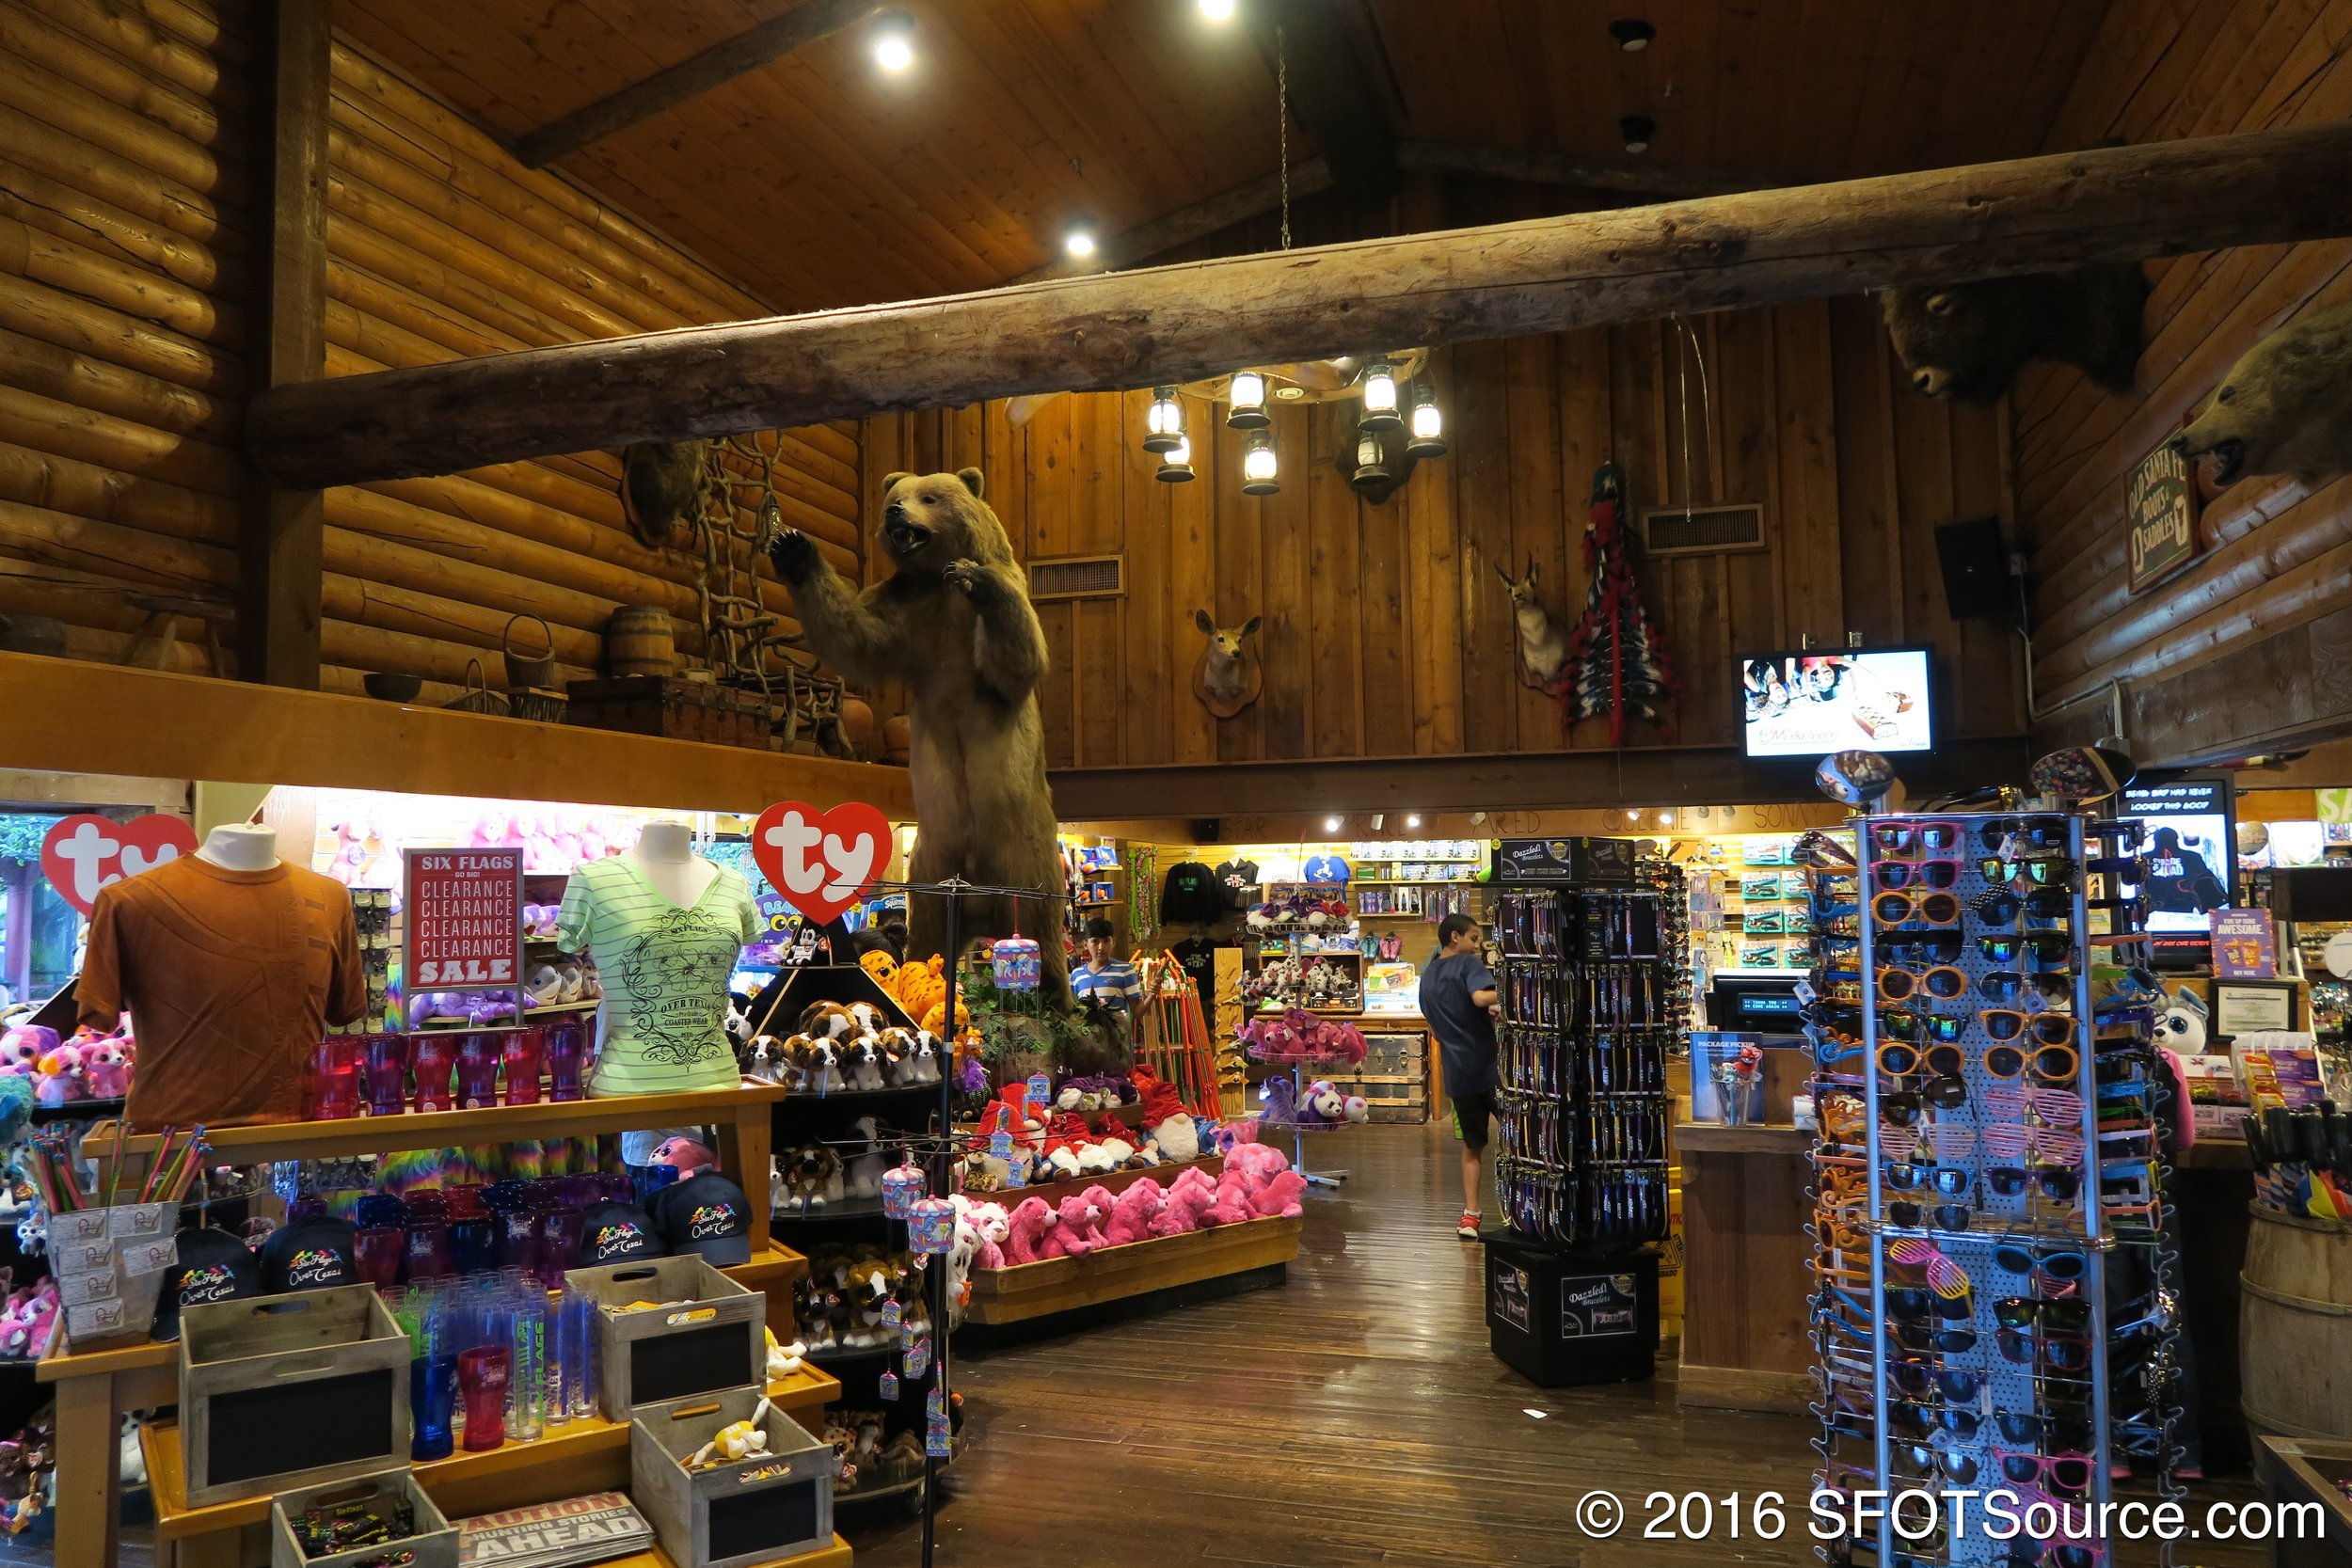 The shop has various souvenirs and items for sale.